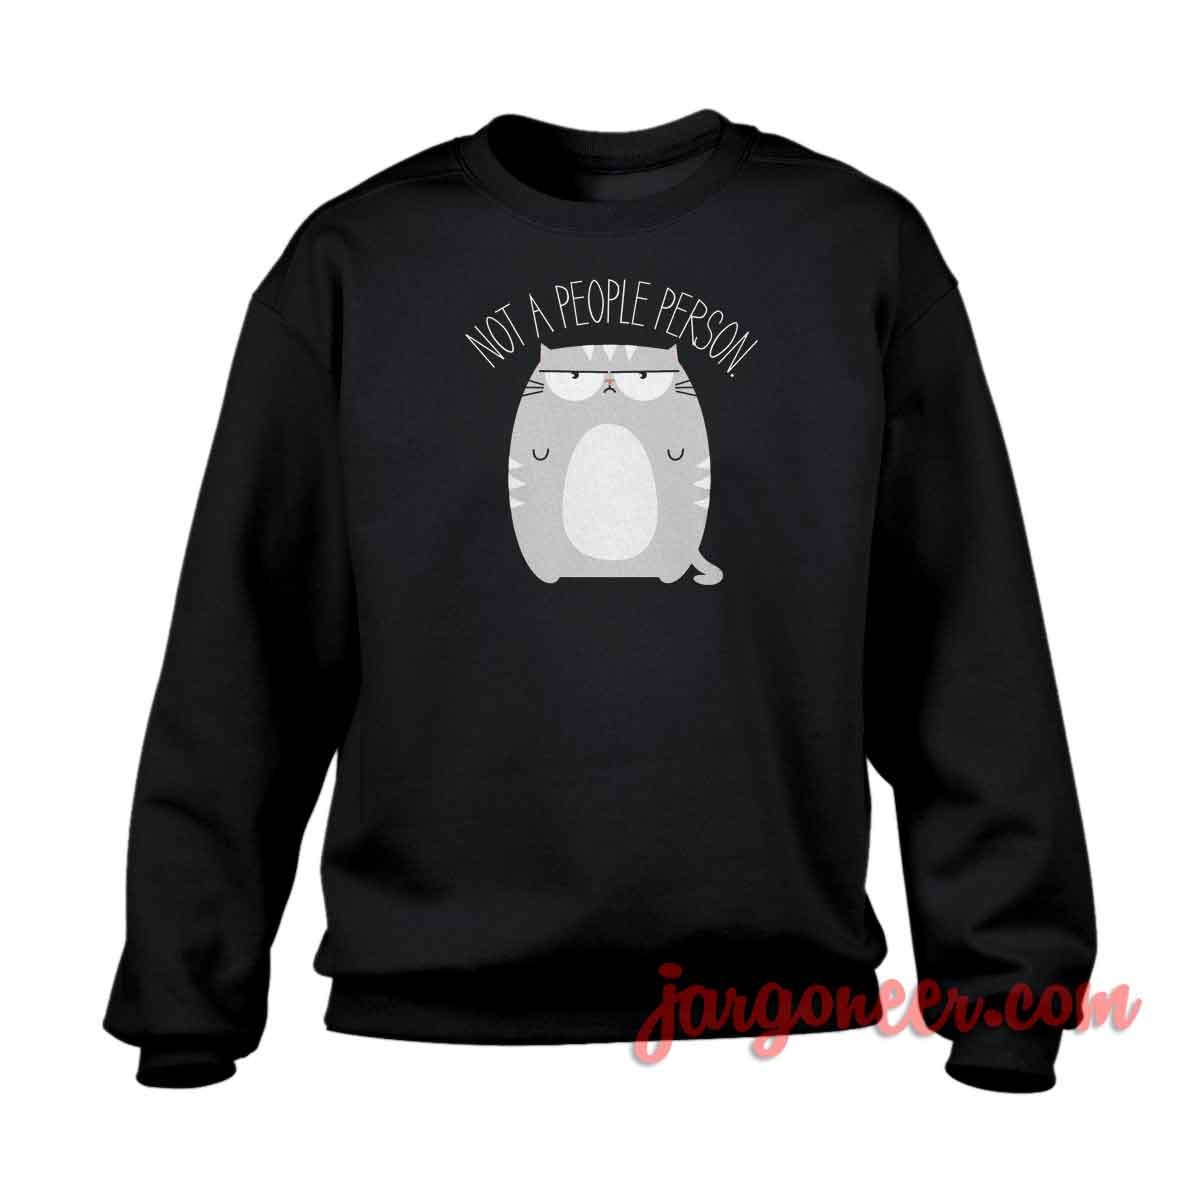 Not A People Person Crewneck Sweatshirt